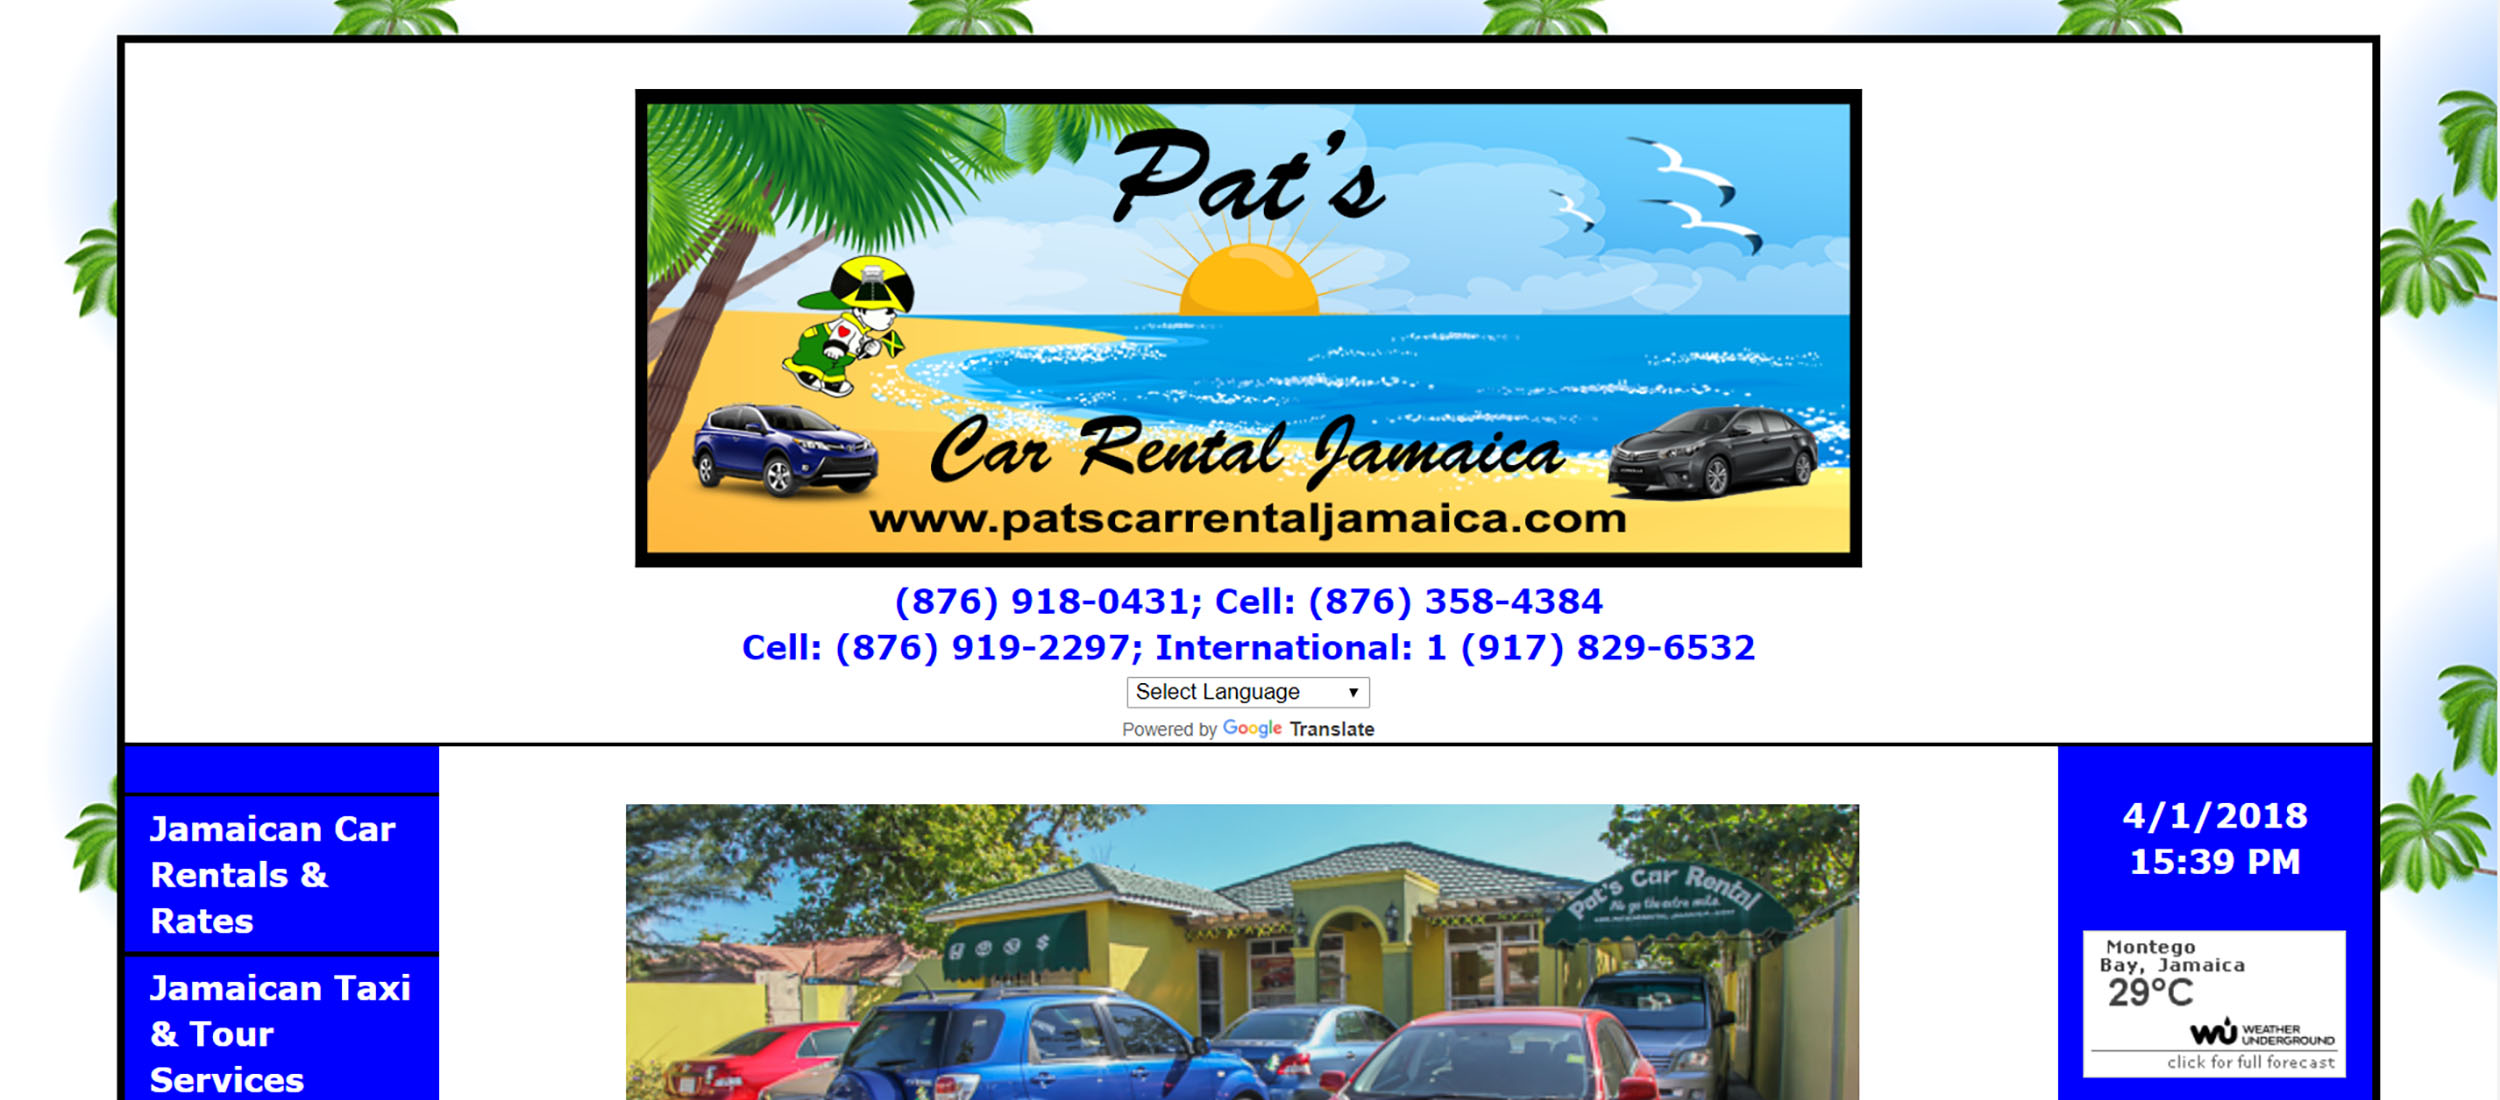 Pat's Car Rental Jamaica by Barry J. Hough Sr.